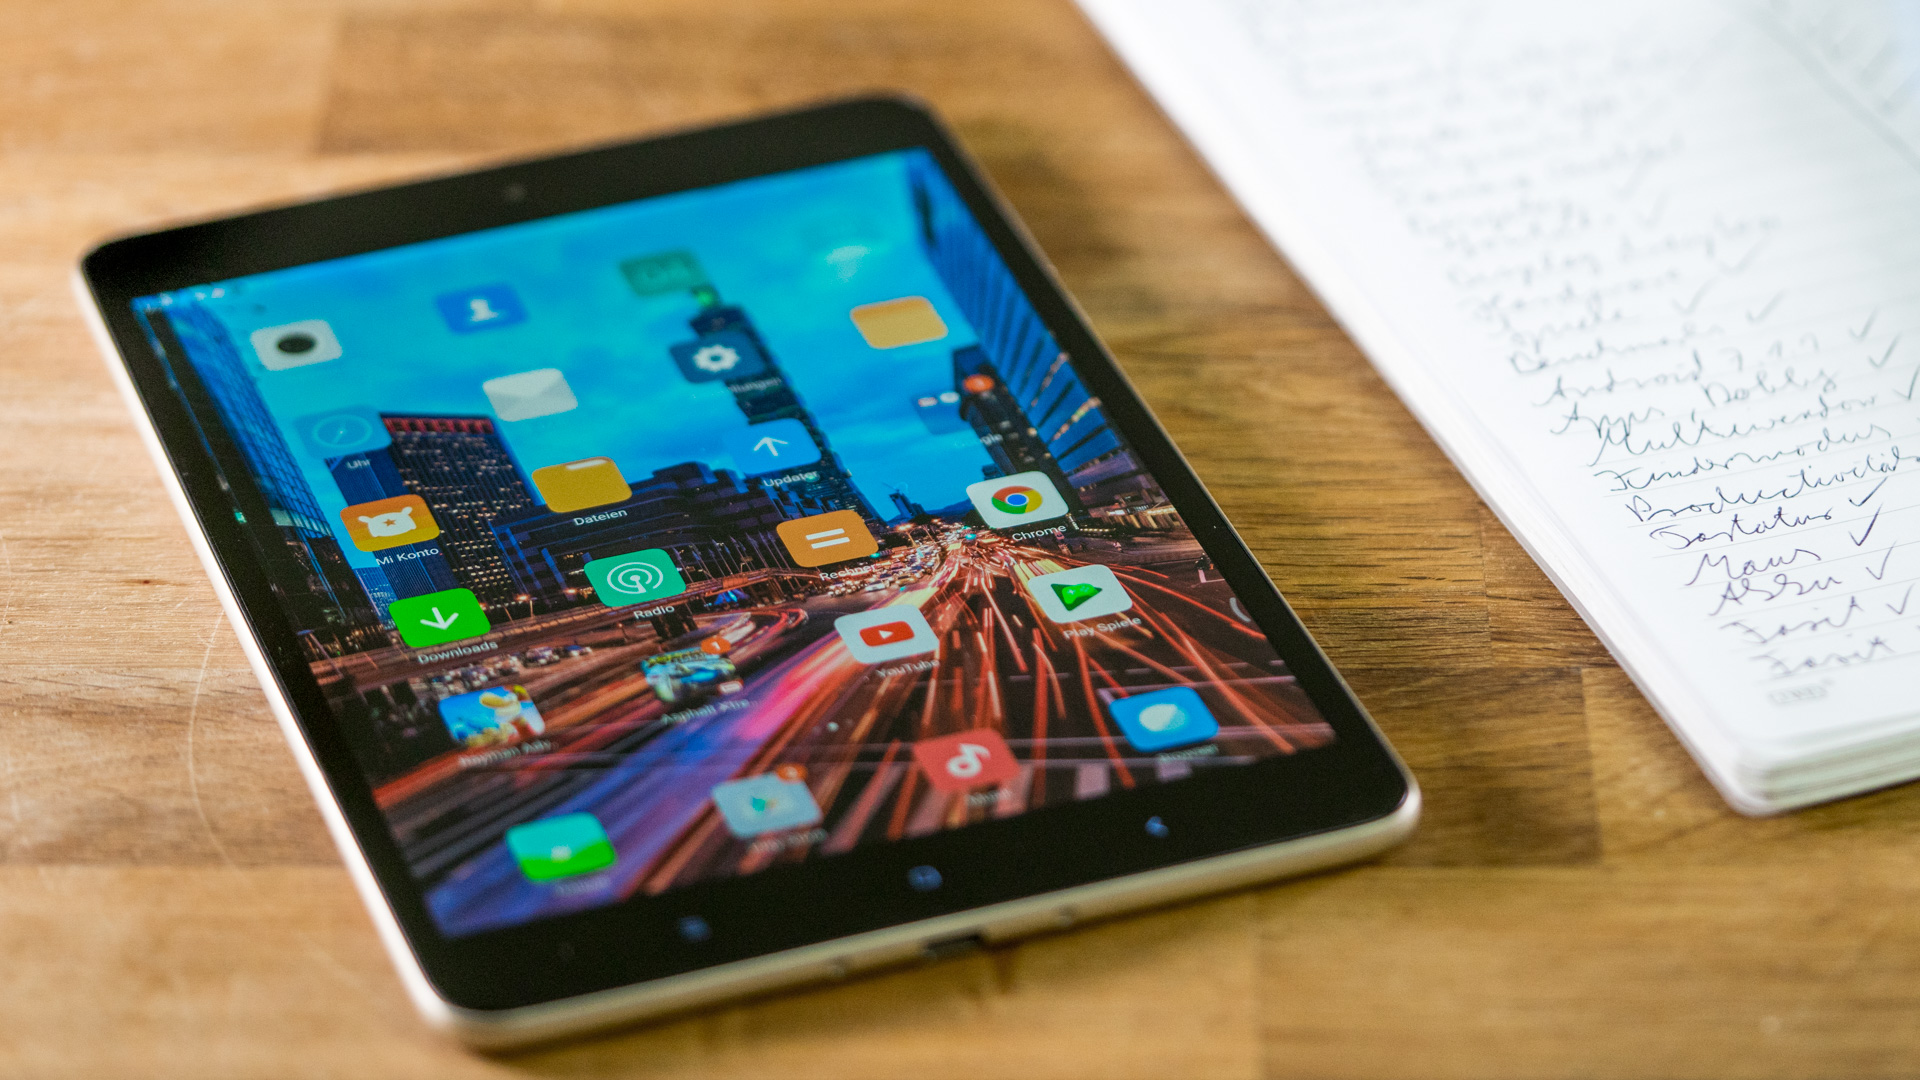 Xiaomi Mi Pad 3 Display